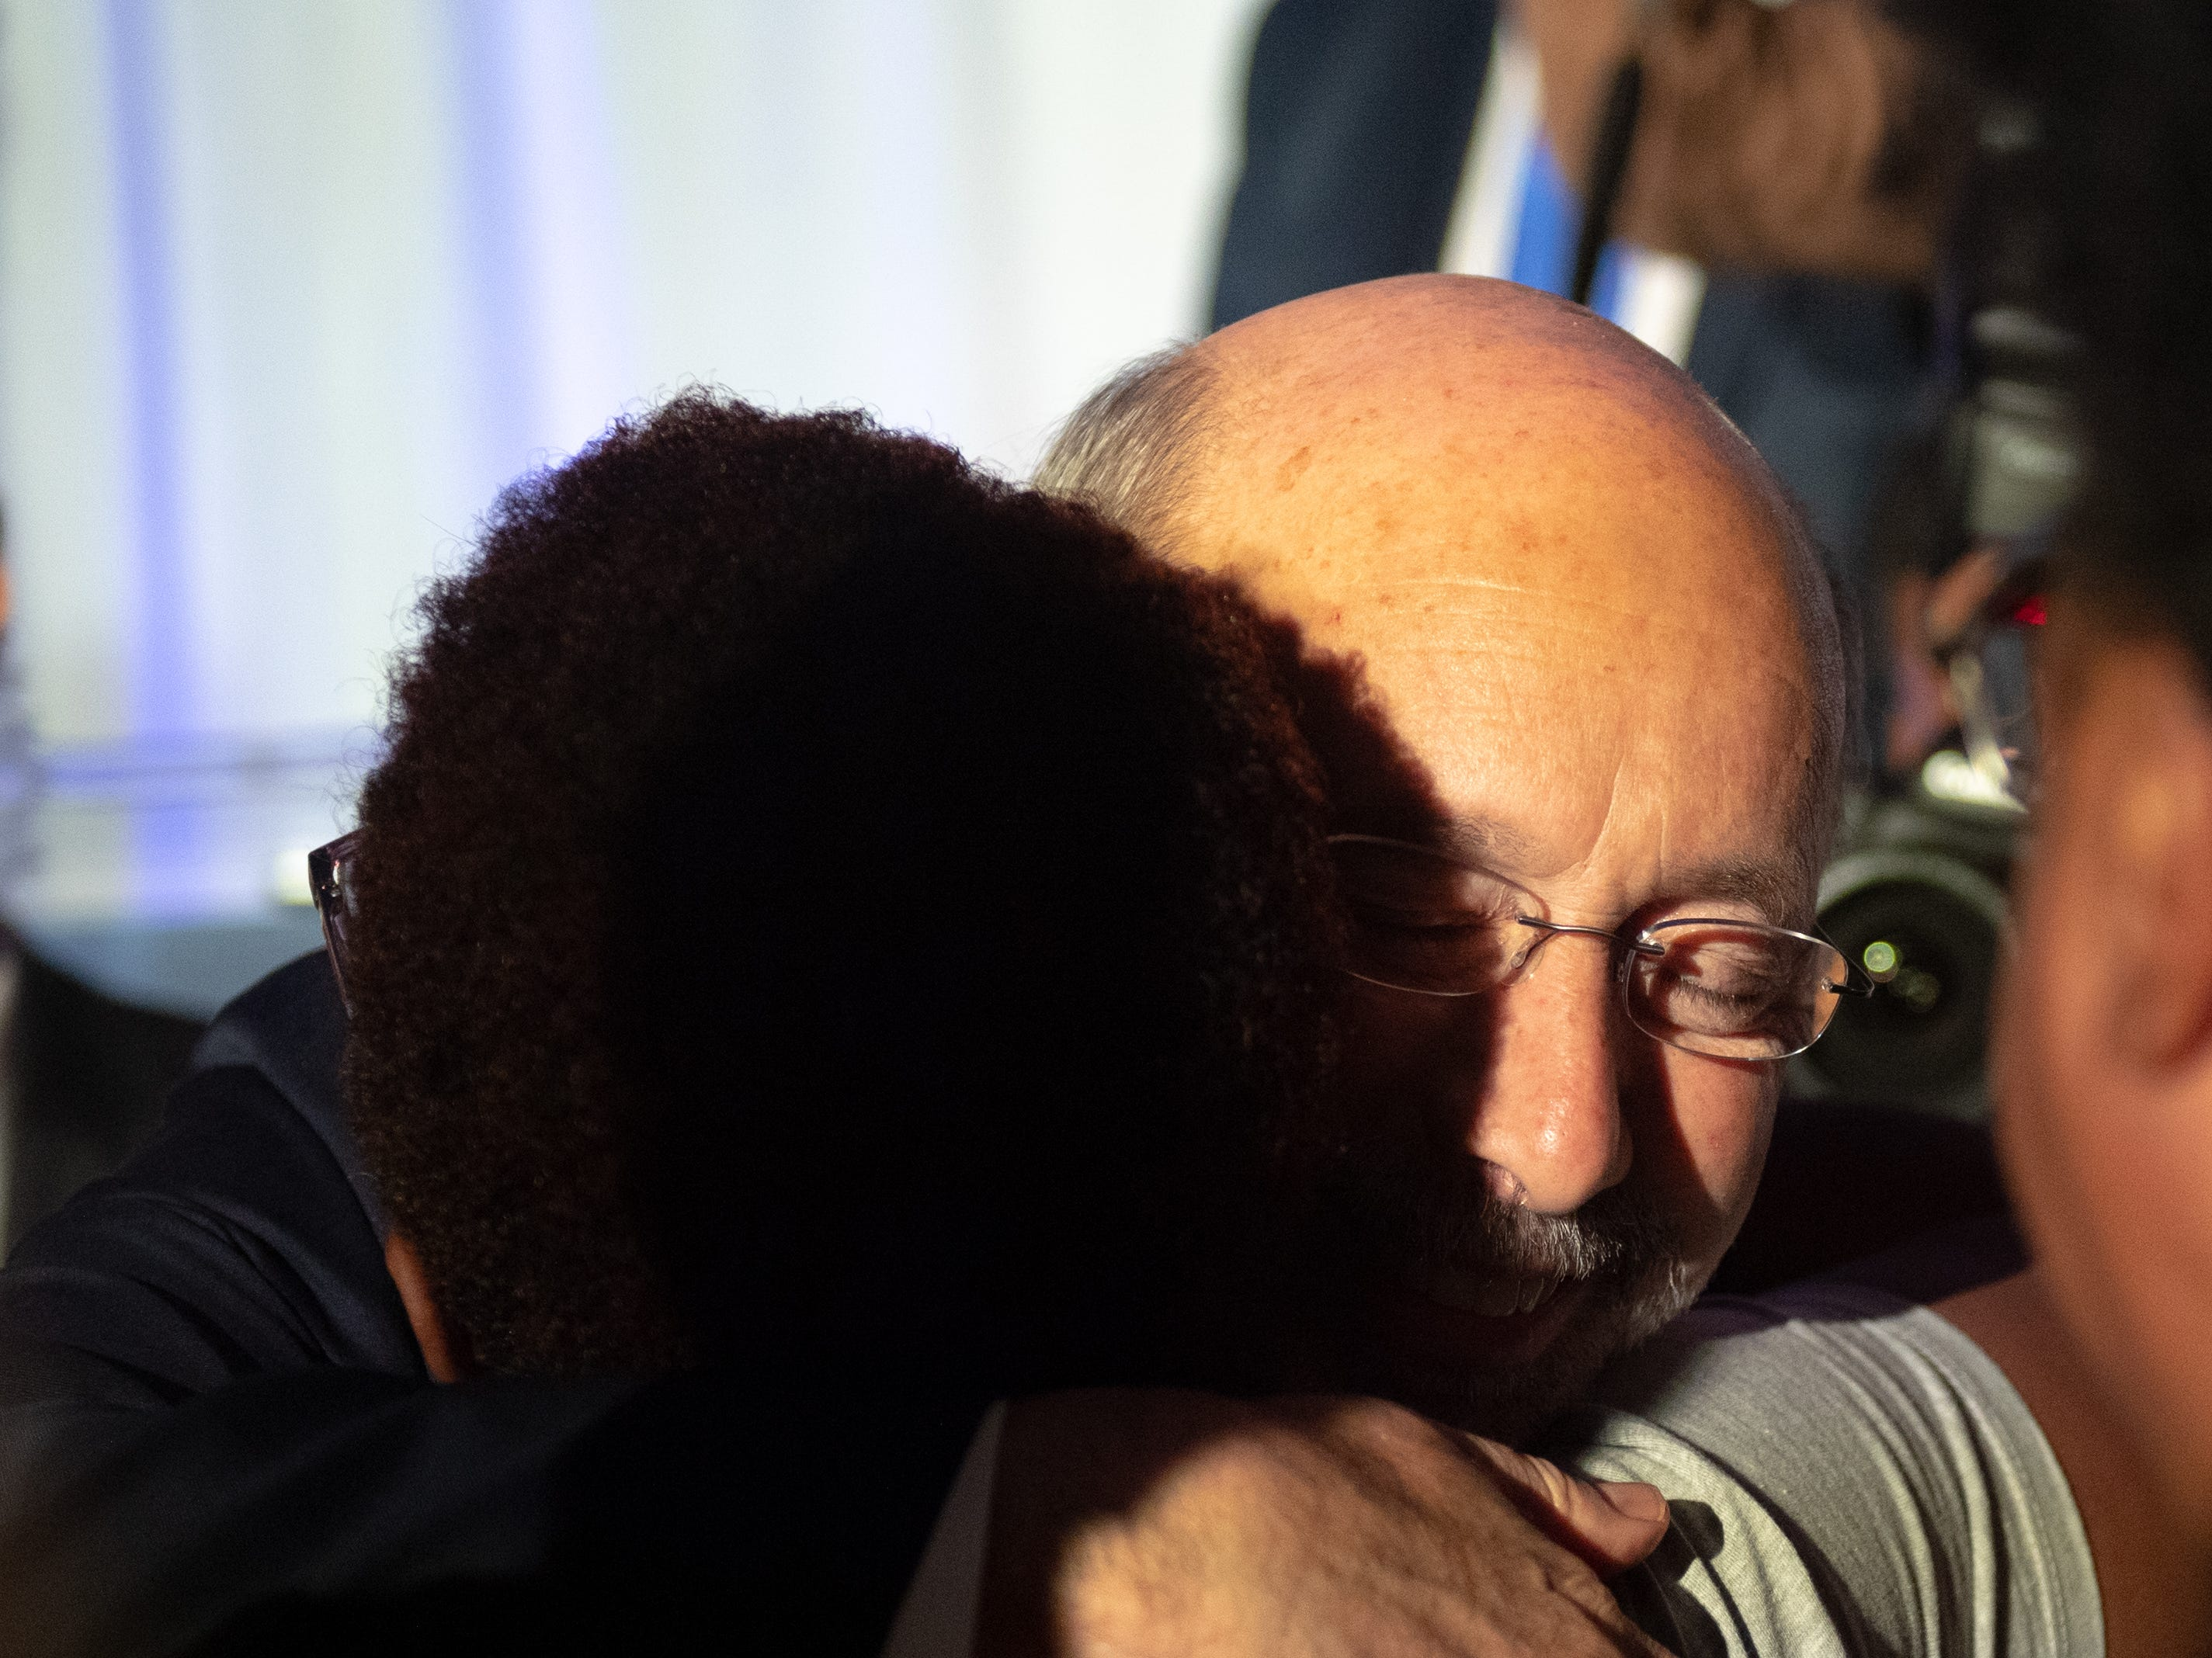 Governor Wolf gives hugs to everyone insight at the Election Night Party at The Bond, Tuesday, November 6, 2018. Tom Wolf was re-elected as Governor of Pennsylvania after defeating Scott Wagner.